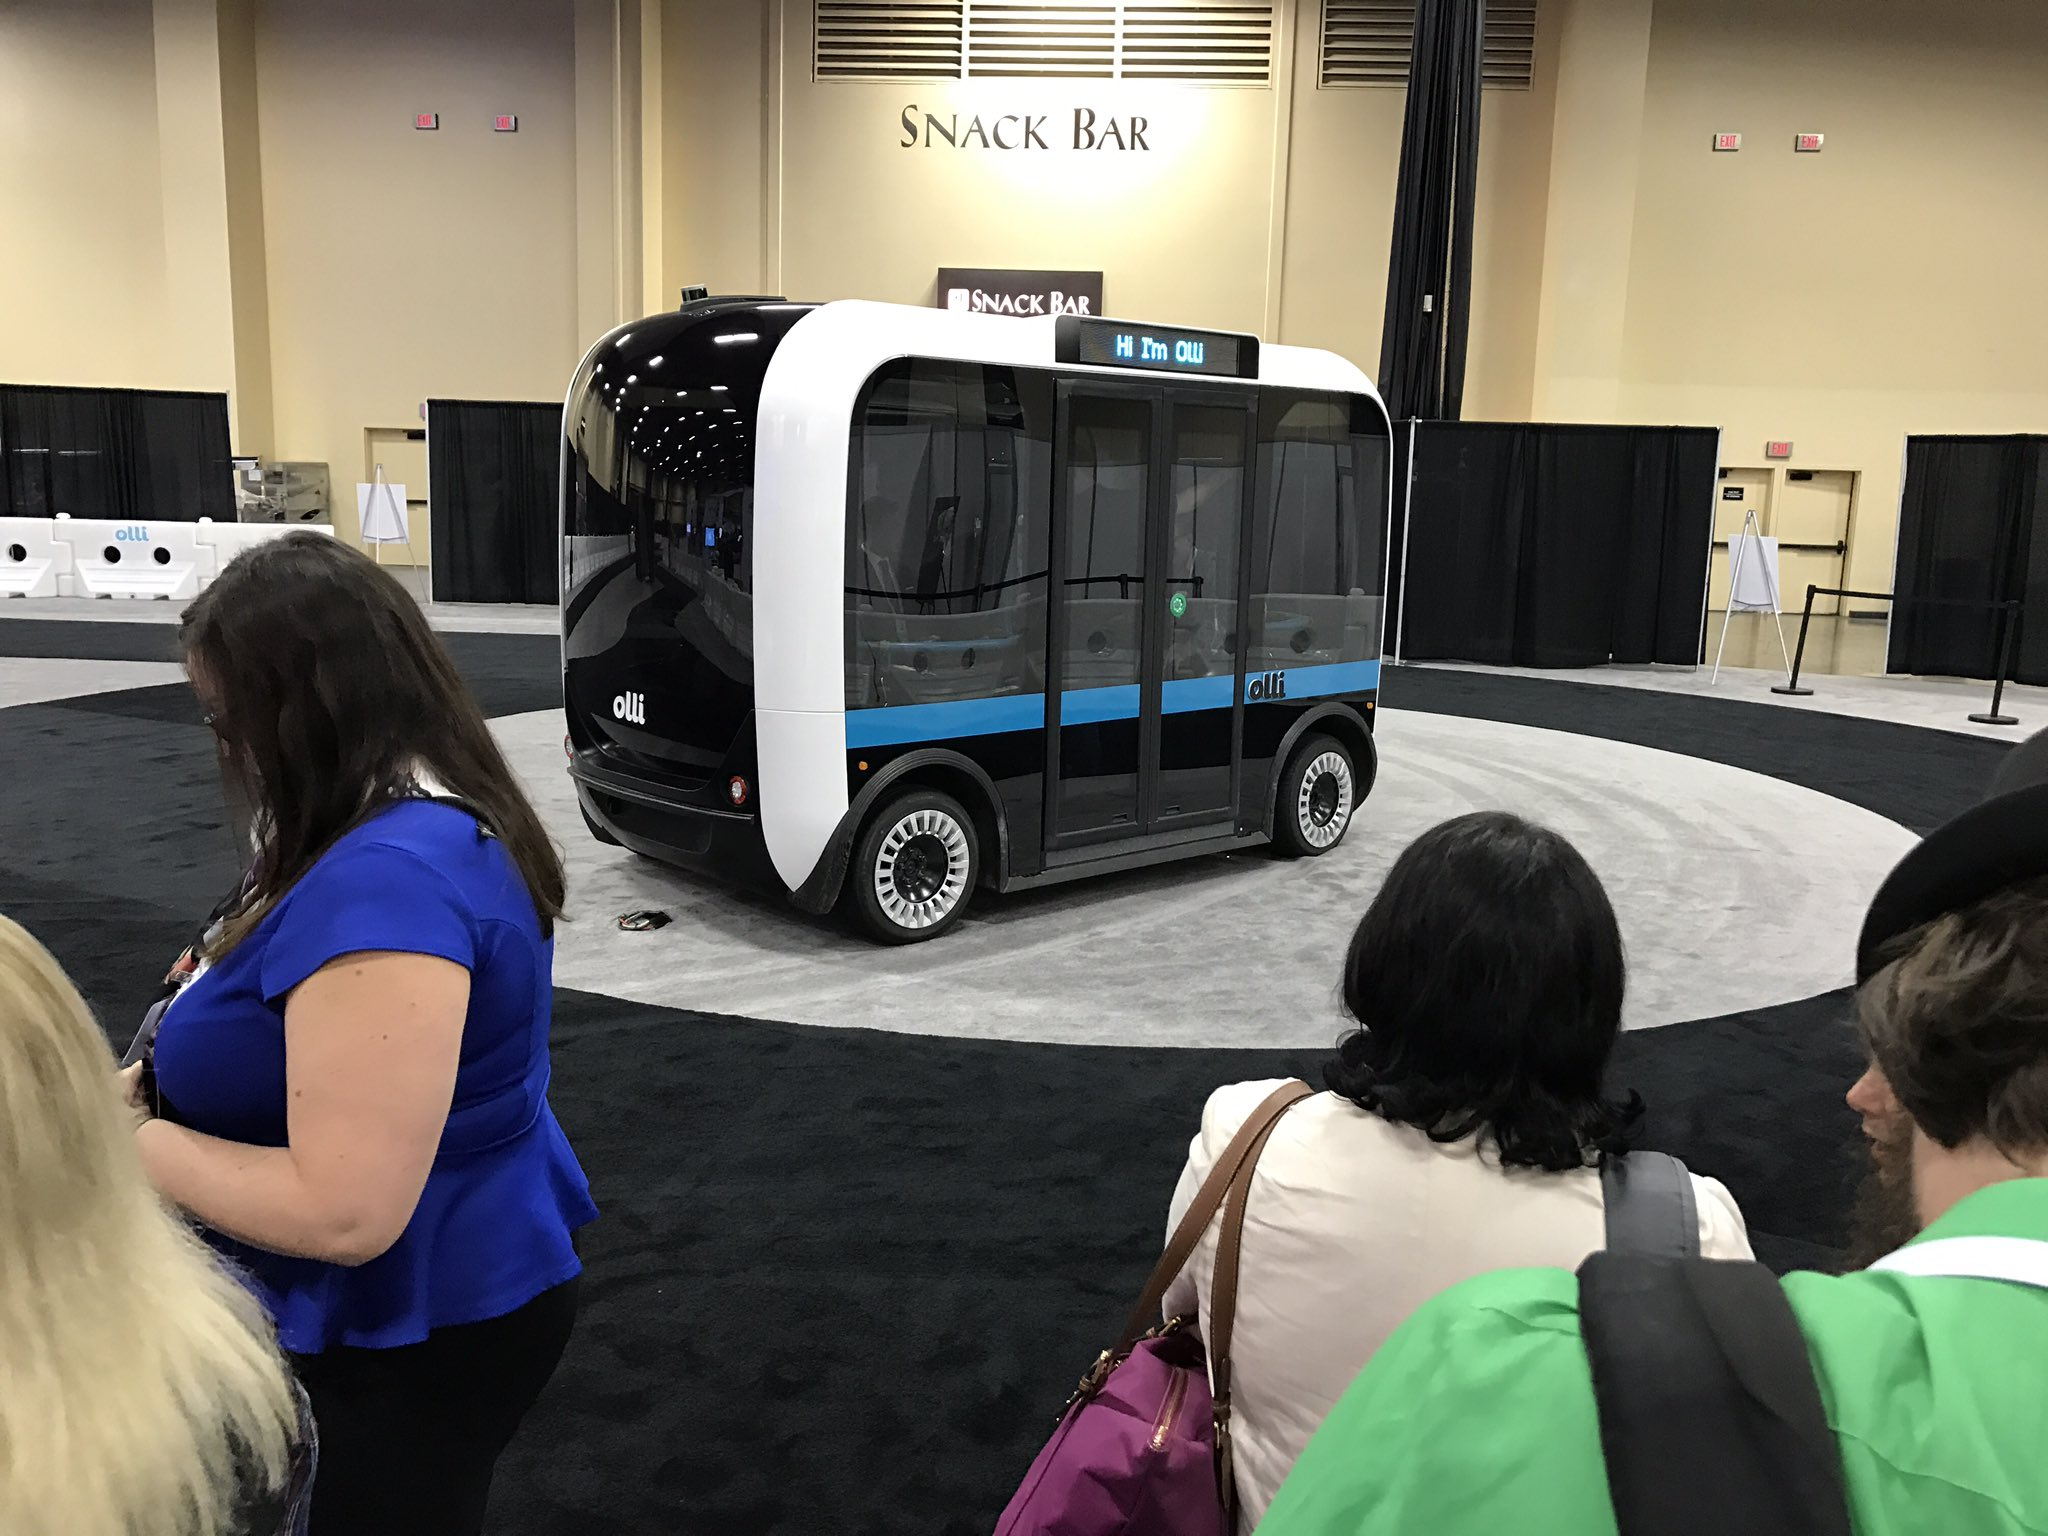 About to take my first ever ride in a #selfdriving #vehicle: #MeetOlli, the autonomous bus. Signed my waiver and everything. #ibmwow https://t.co/jjw4pQpRt0